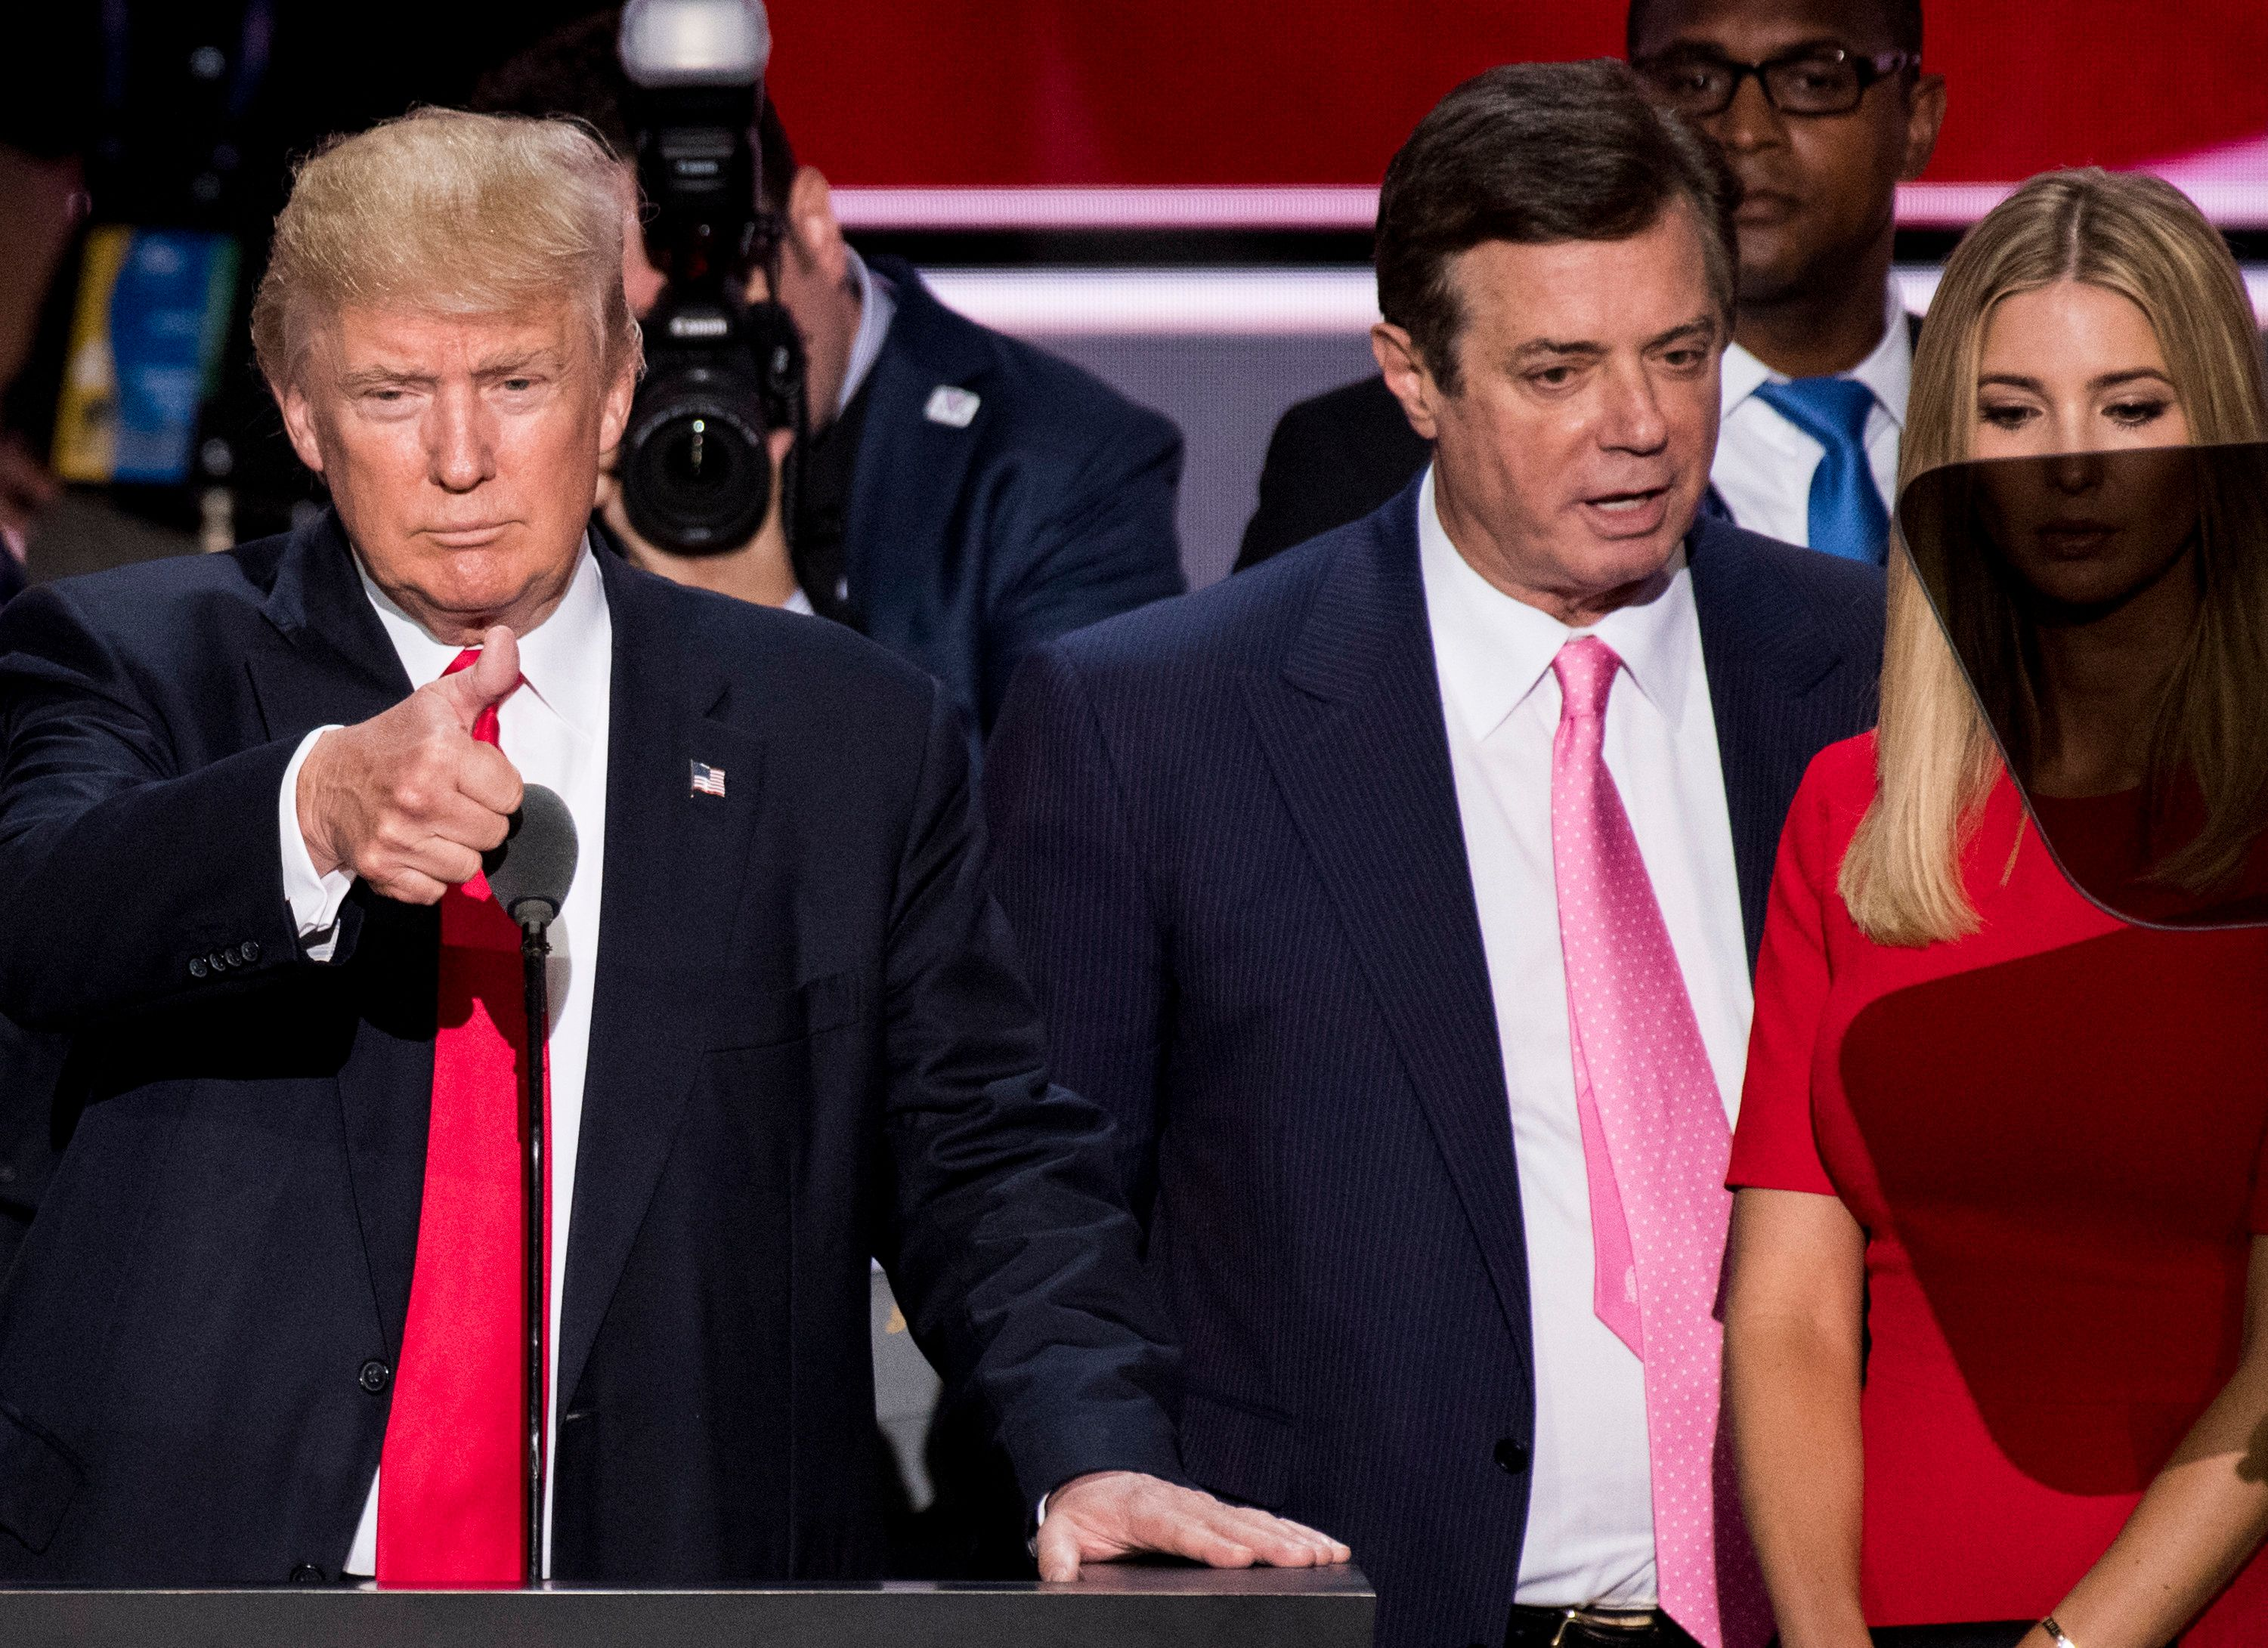 Paul Manafort May Not Contest Claim He Lied To Robert Mueller's